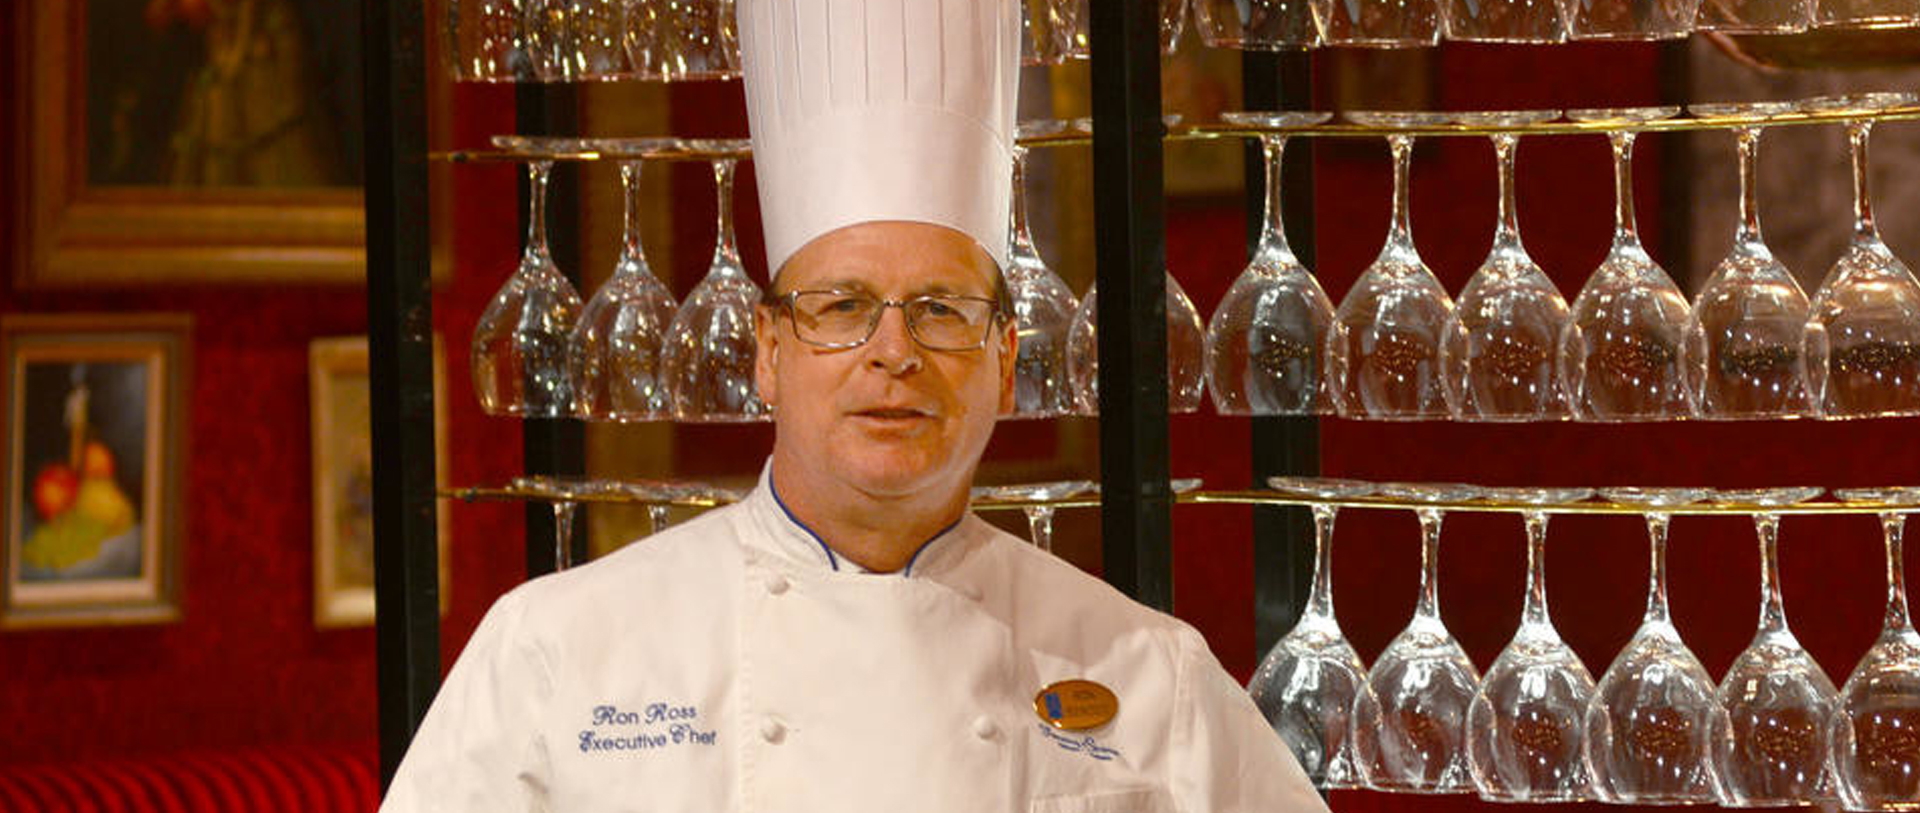 Meet Chef Ron Ross